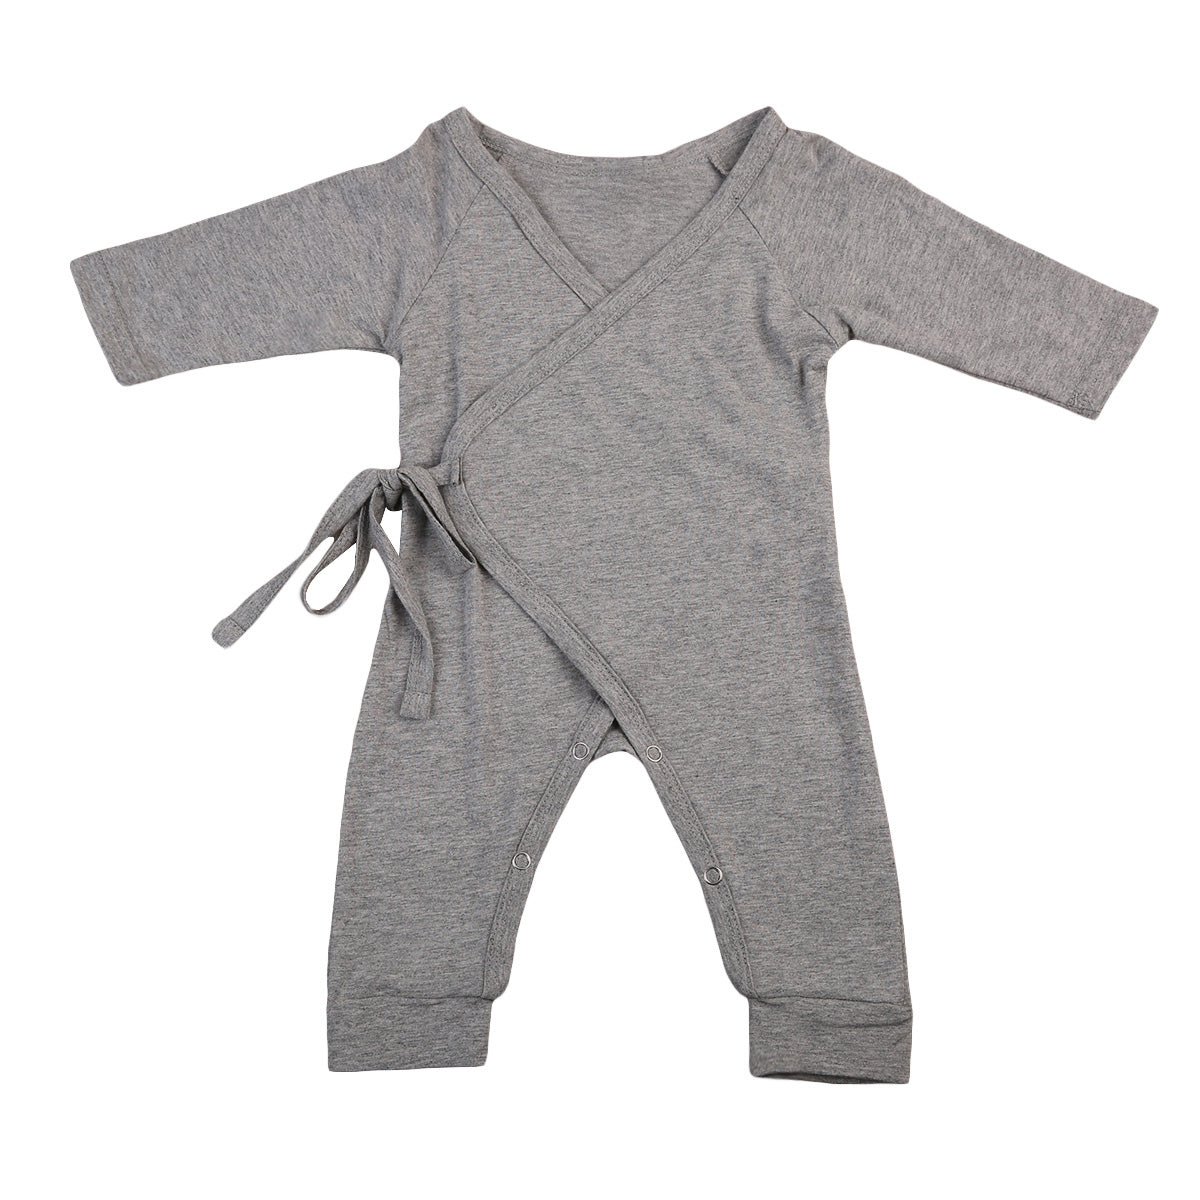 Asher Long Sleeve Gender Neutral Cotton Romper